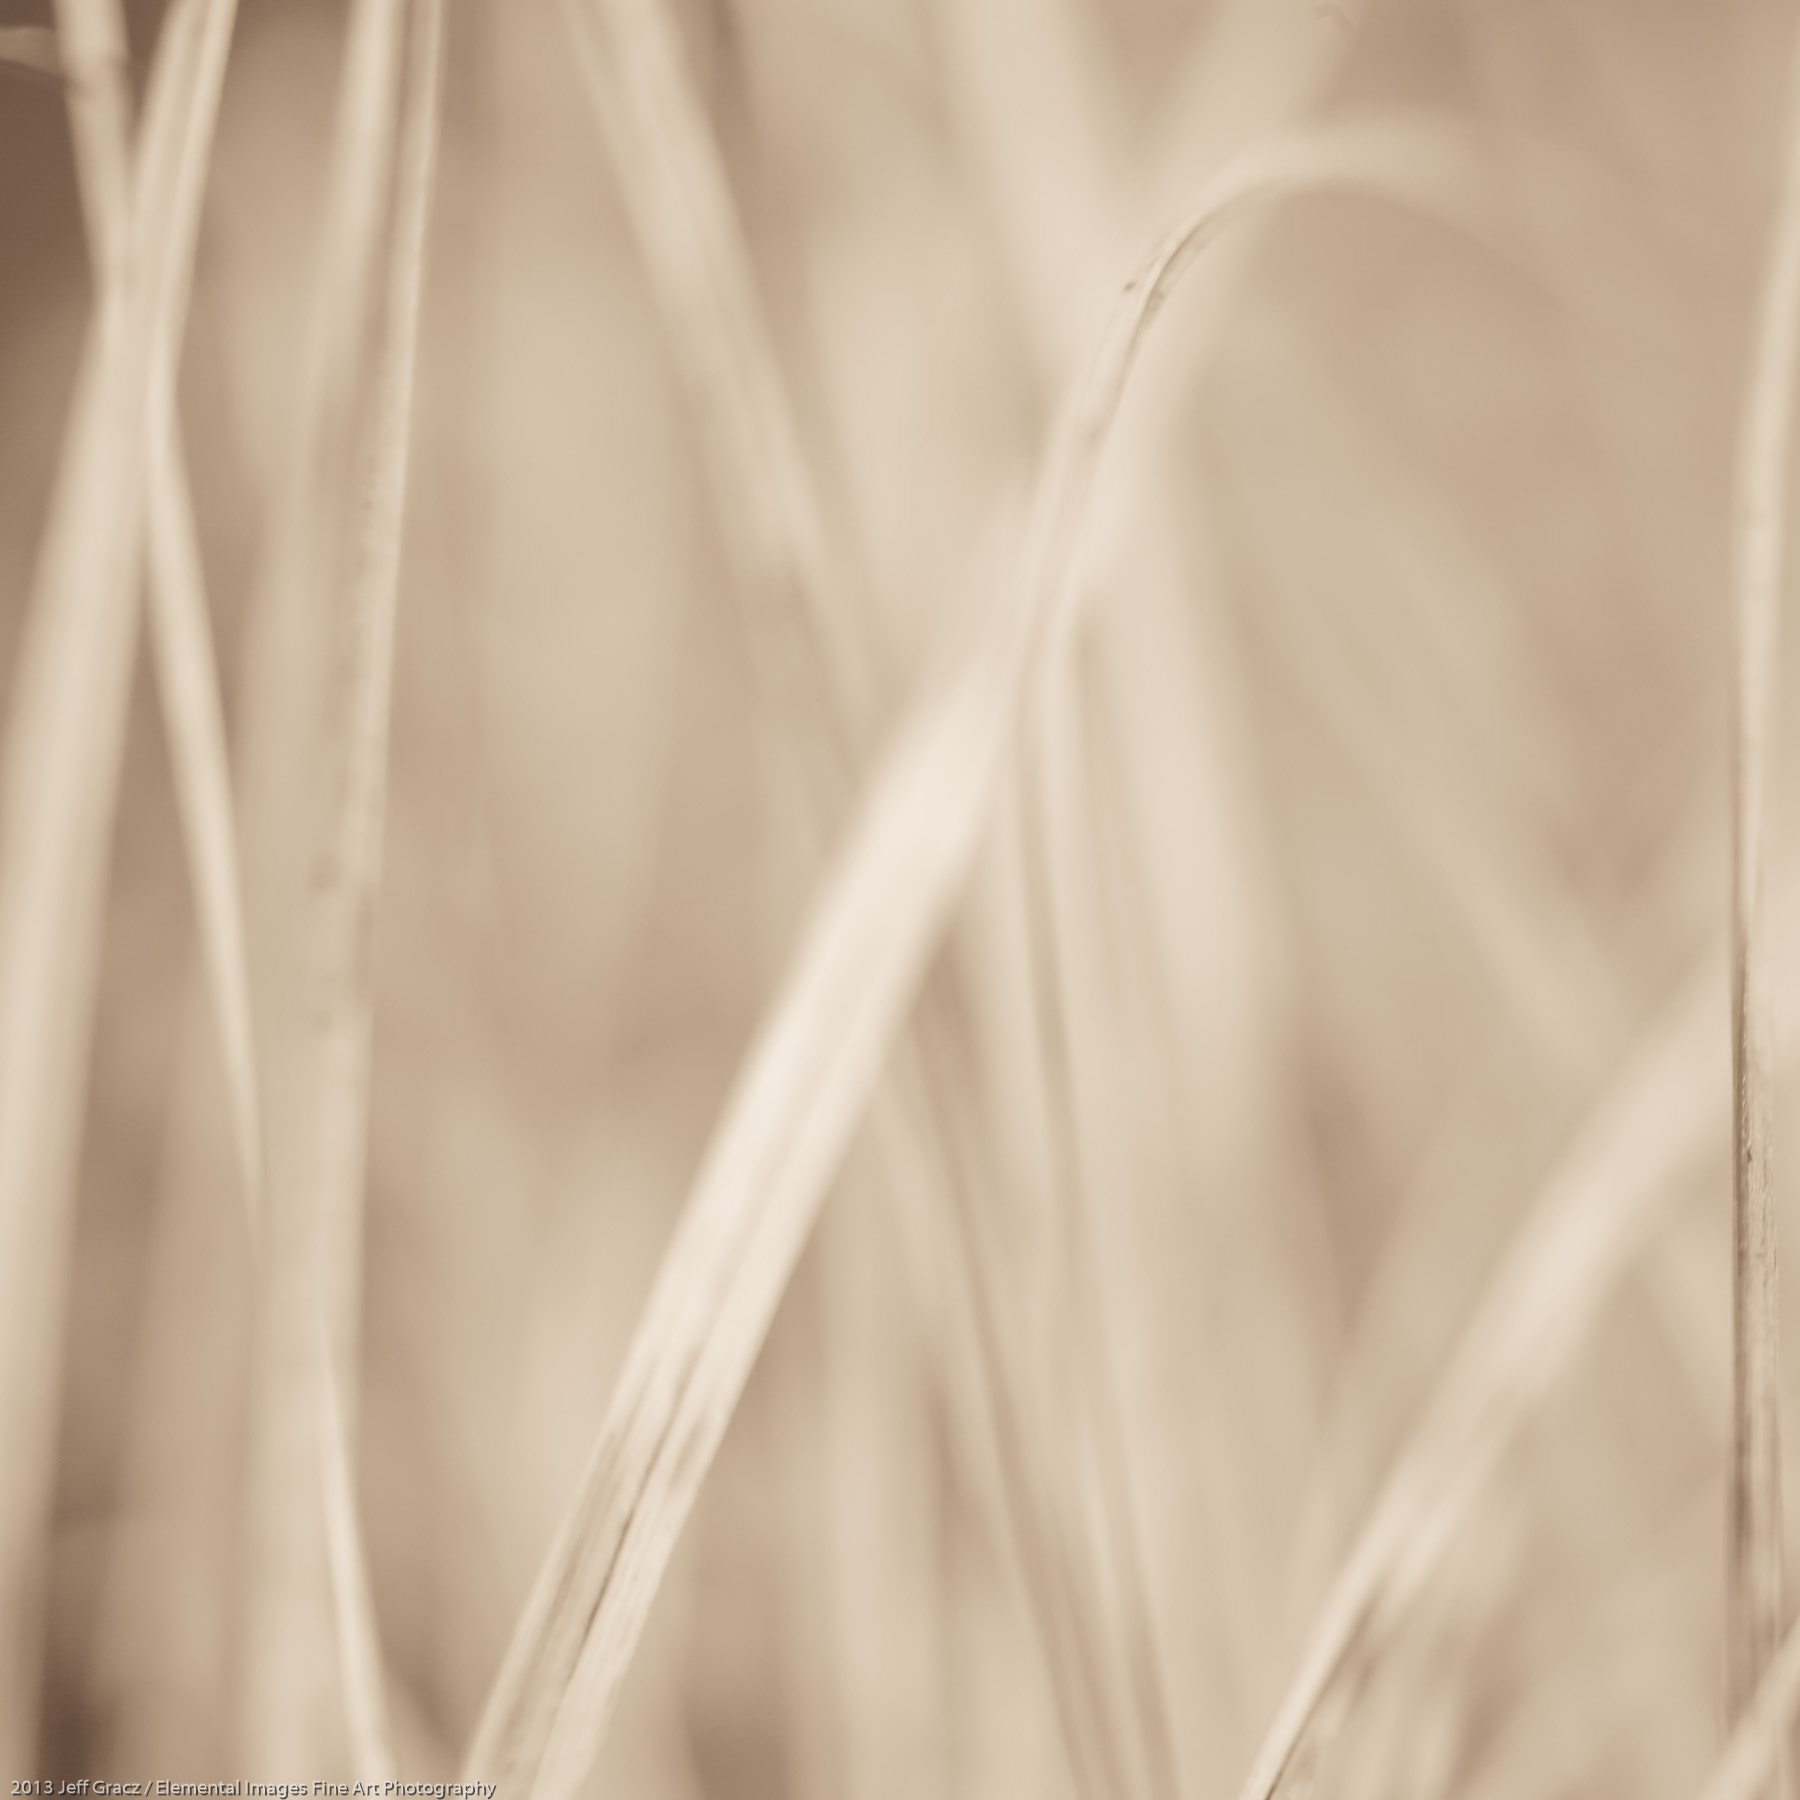 Grasses XXXIV | Portland | OR | USA - © 2013 Jeff Gracz / Elemental Images Fine Art Photography - All Rights Reserved Worldwide